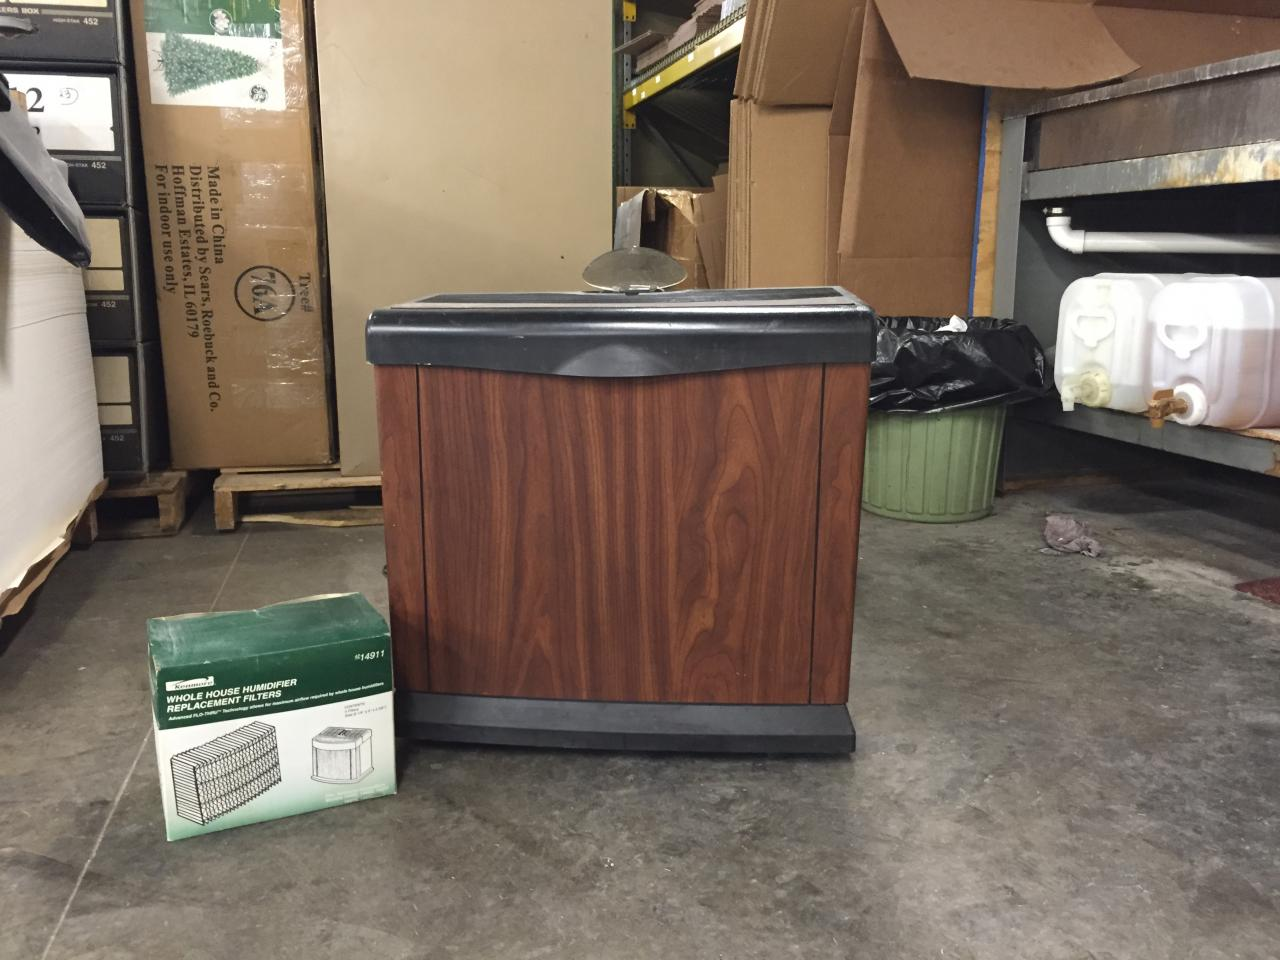 Lot 35 Kenmore Quiet Comfort 13 Humidifier With Filters